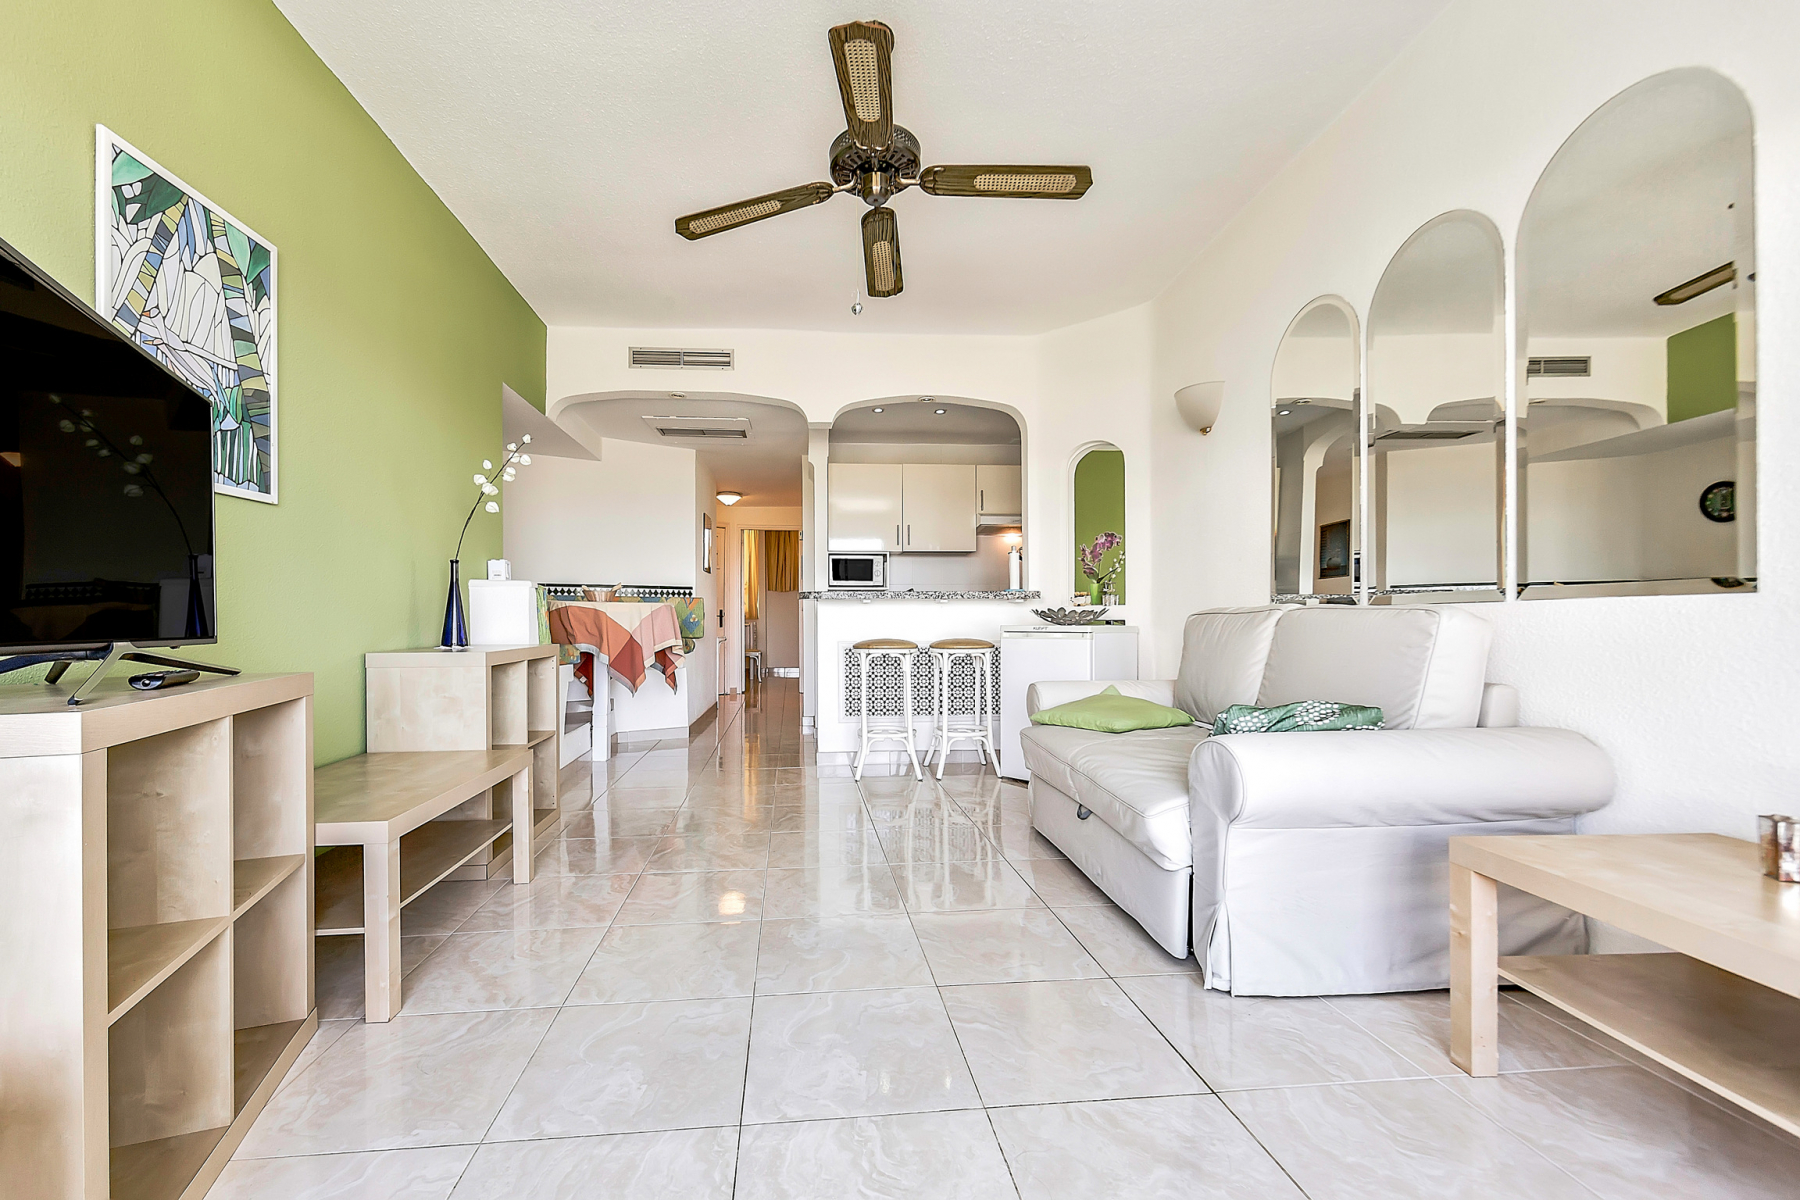 Properties for Sale in Tenerife, Canary Islands, Spain | SylkWayStar Real Estate. Lovely 1 Bedroom Apartment - Altamira. Image-25871